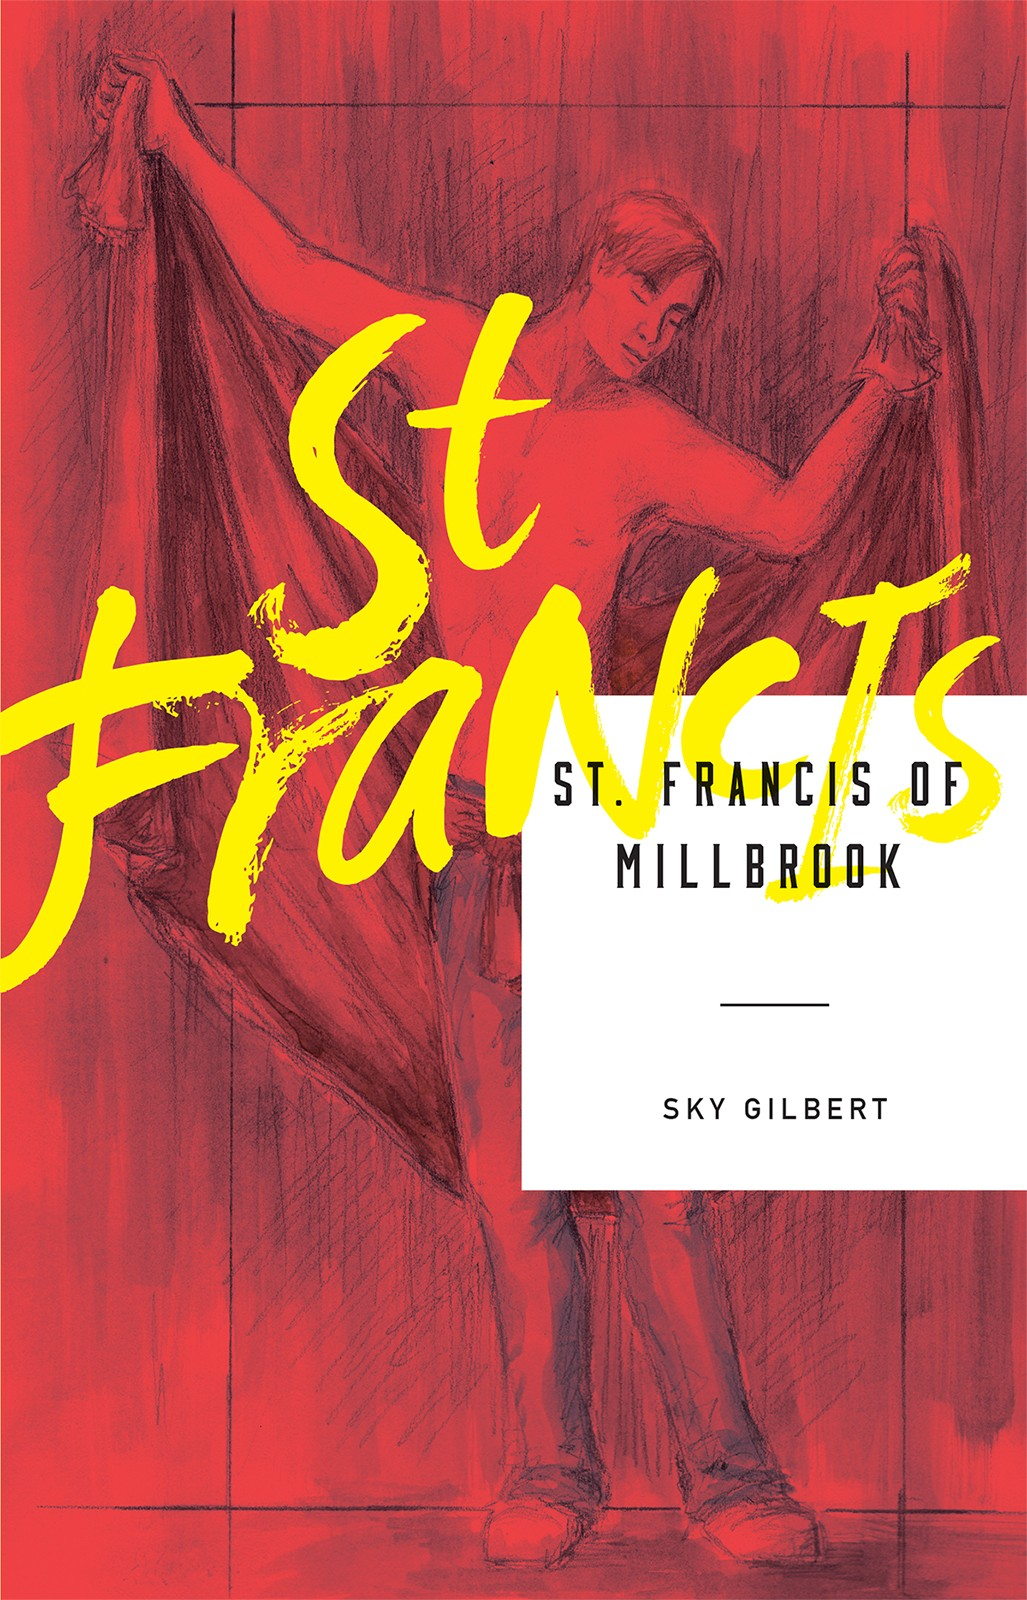 St. Francis of Millbrook (print)